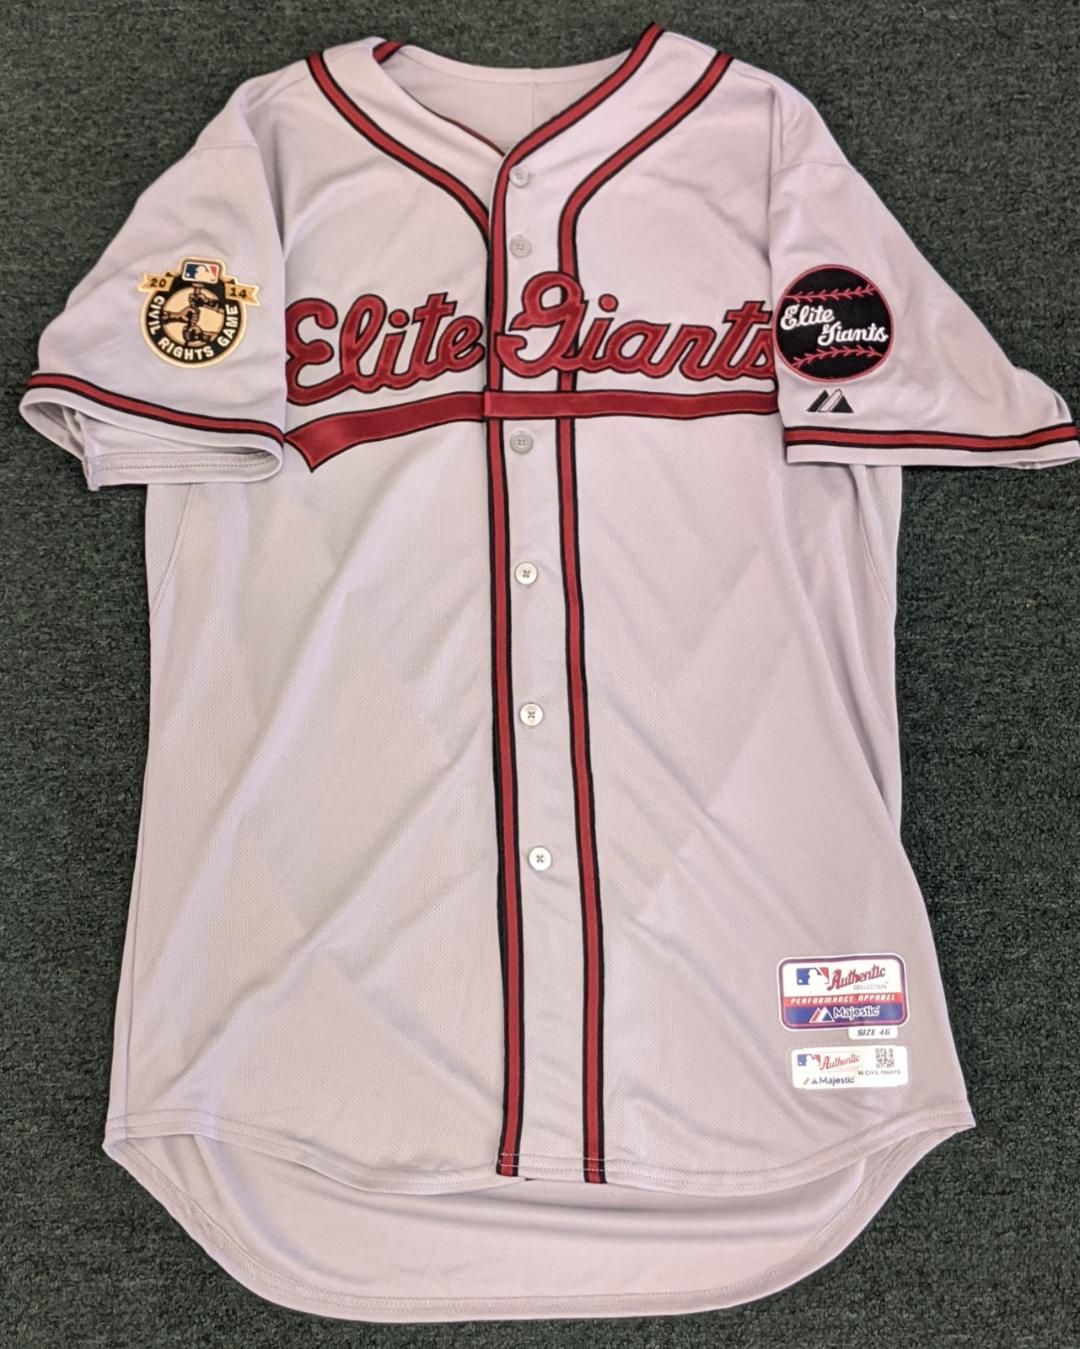 BALTIMORE ORIOLES / ELITE GIANTS  CIVIL RIGHTS GAME JERSEY